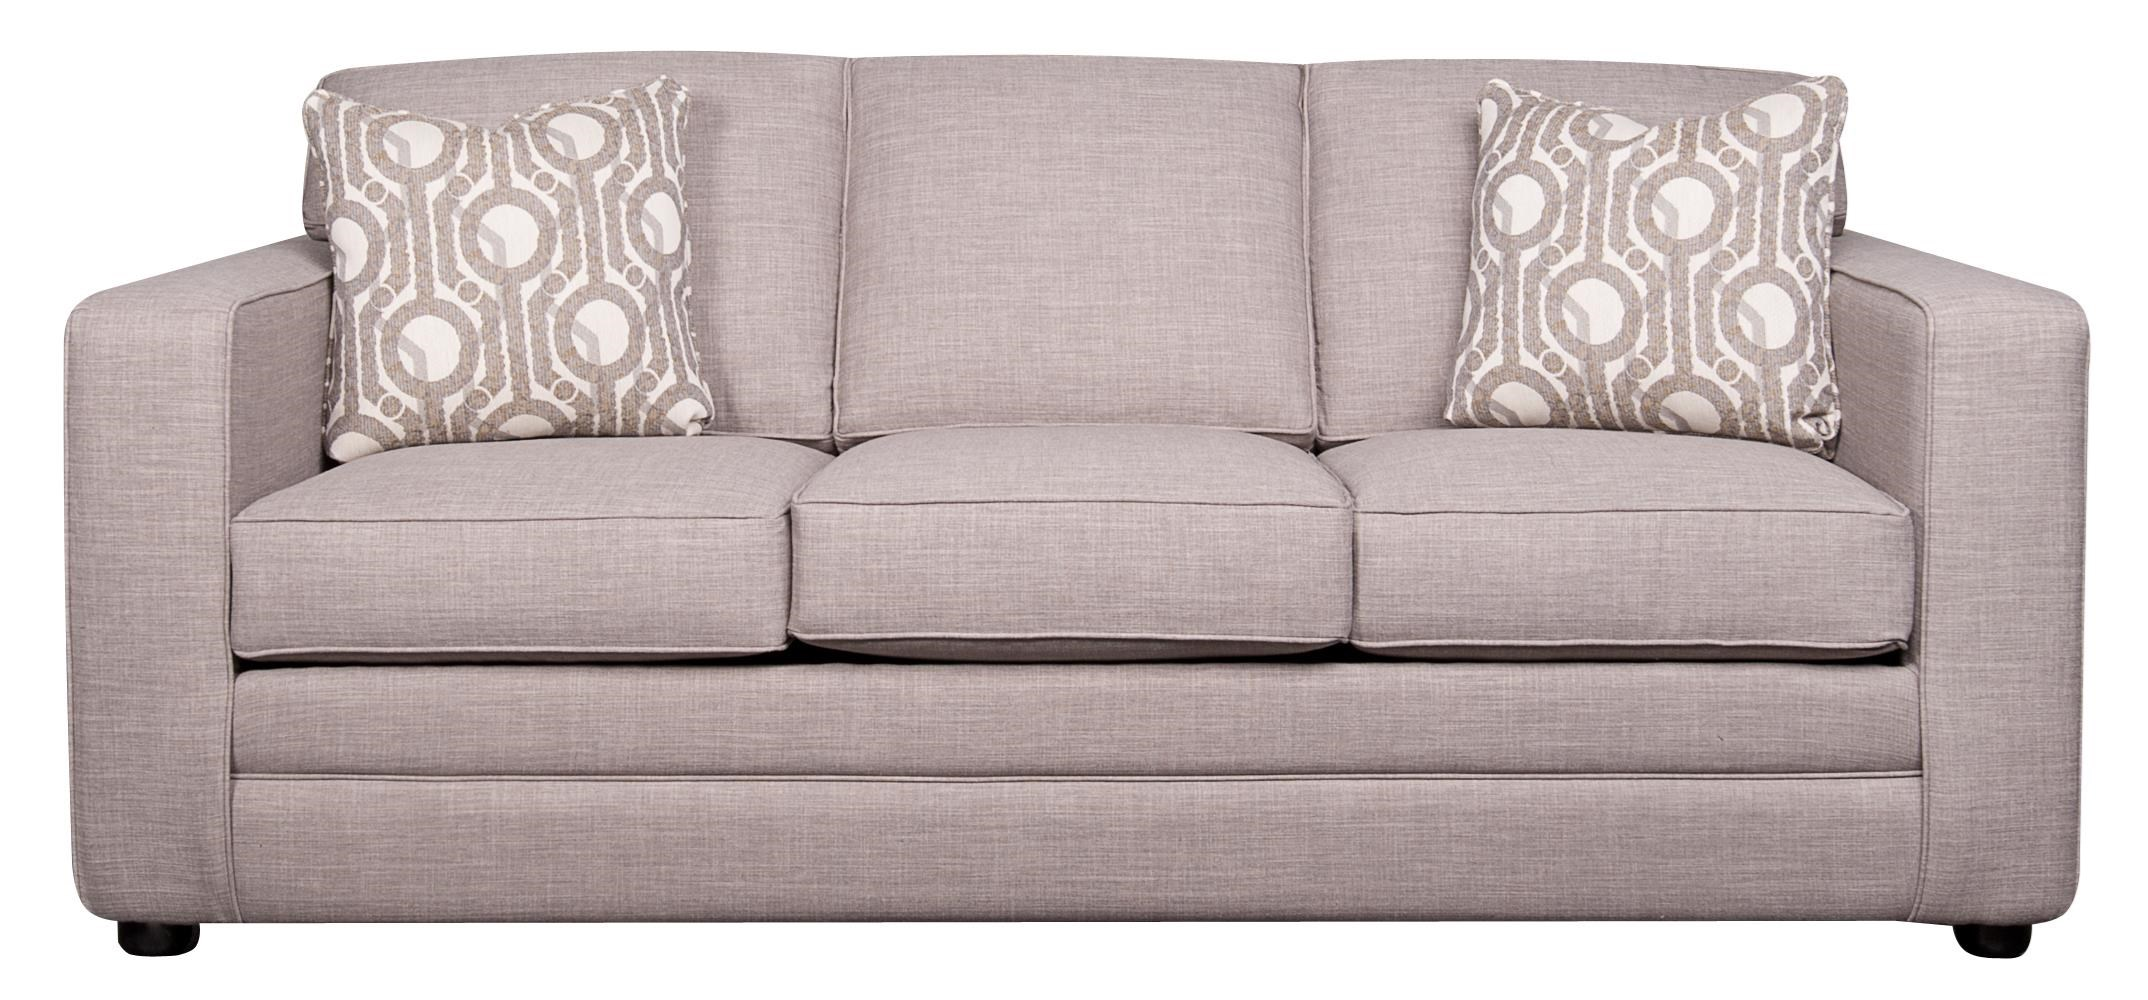 Sofa Queen Vera Queen Sleeper Sofa With Memory Foam By Elliston Place At Morris Home